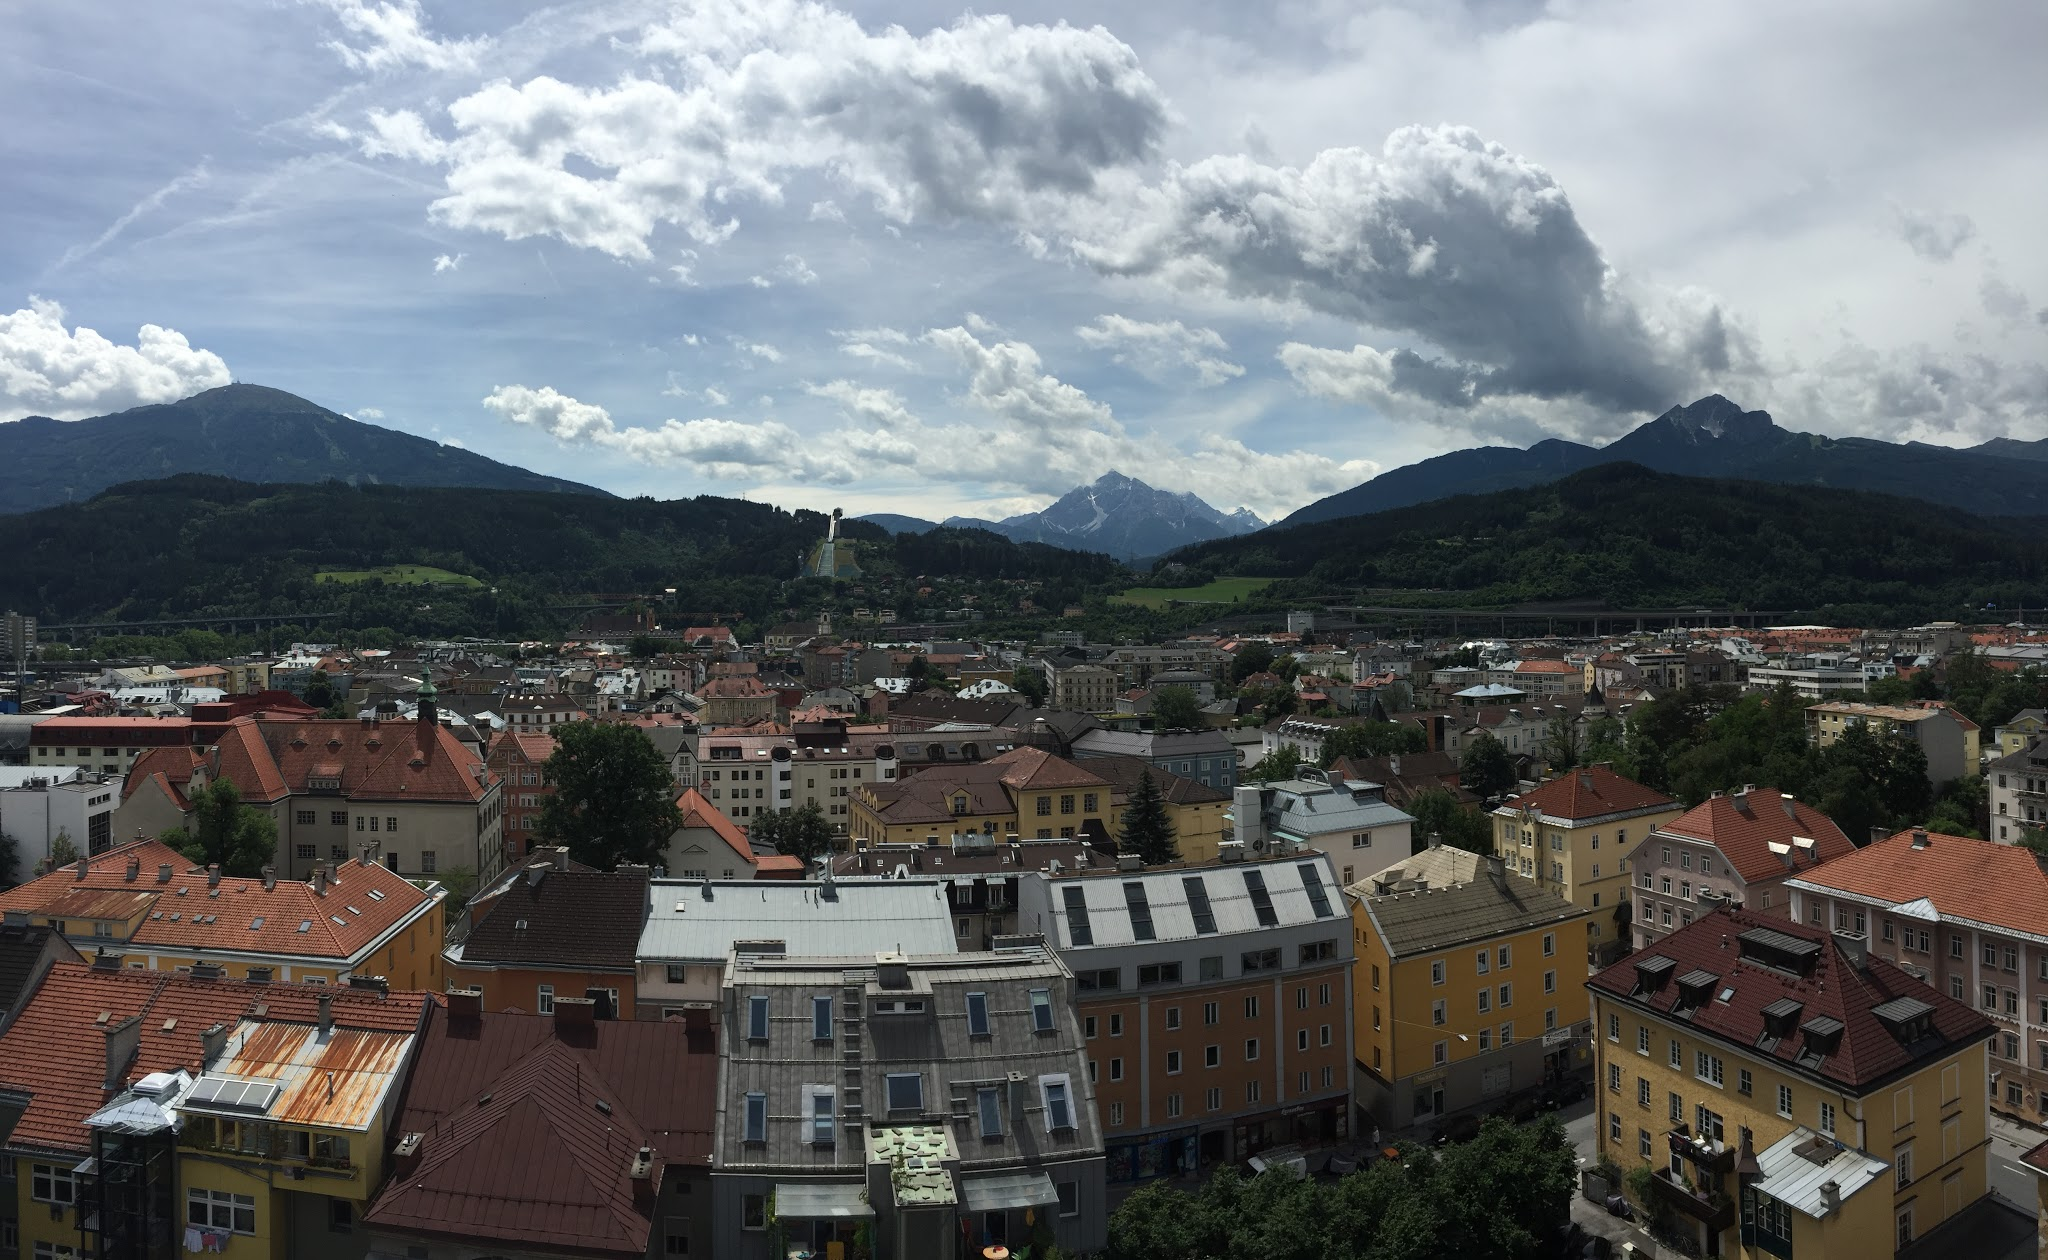 Photo overlooking Innsbruck in the foreground and the alps and partly cloudy sky in the background